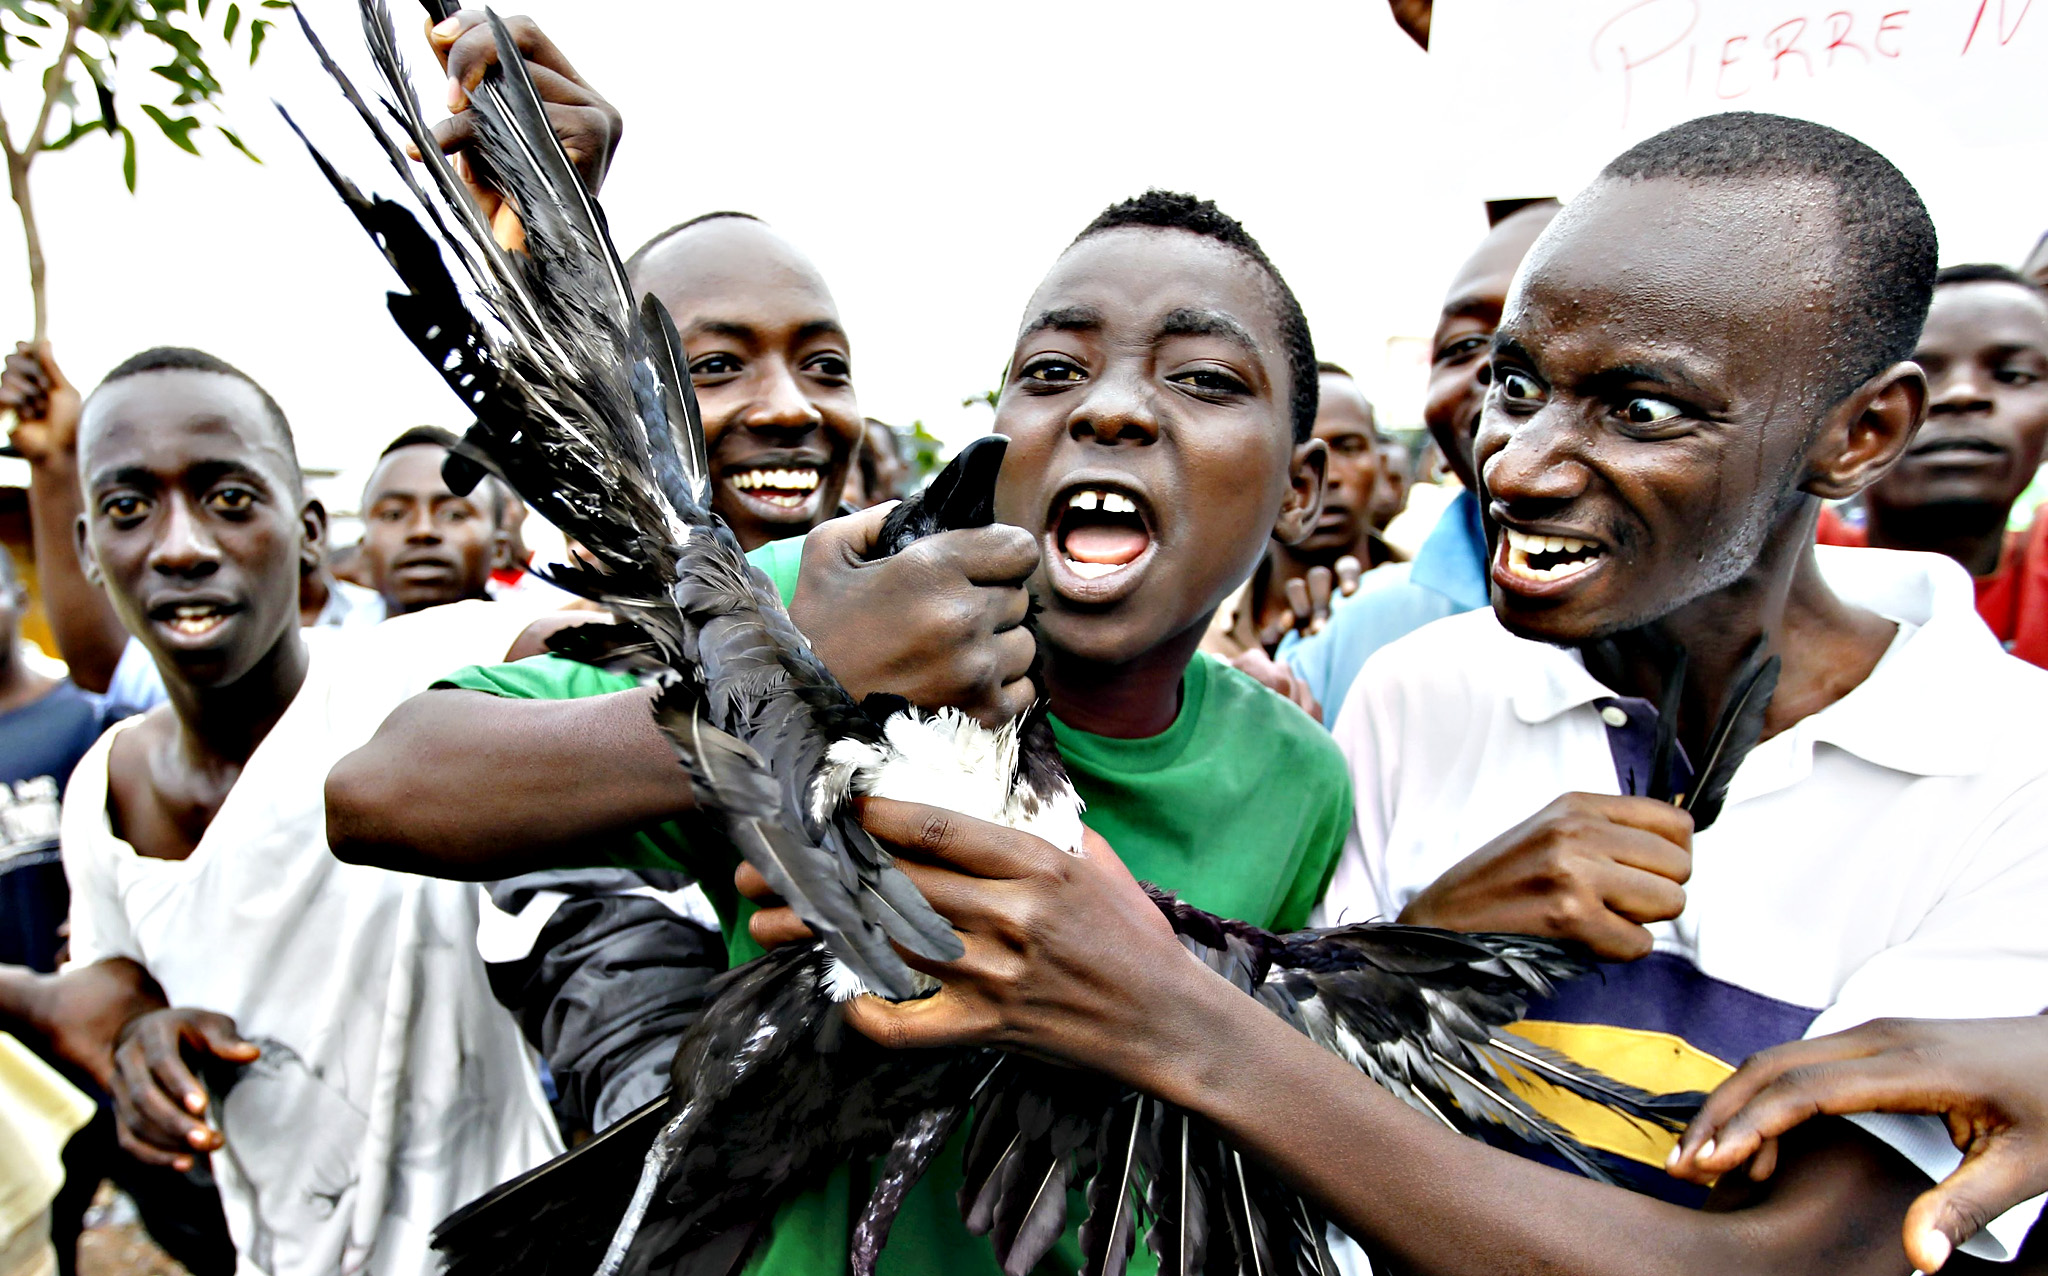 Protesters carry a dead crow as they chant anti-government slogans during demonstrations against the ruling CNDD-FDD party's decision to allow President Pierre Nkurunziza to run for a third five-year term in office, in Bujumbura, Burundi on Thursday. A senior U.S. diplomat told Burundi's President, Pierre Nkurunziza, on Thursday that the east African country risks boiling over if it stifles political opposition, as protests against the president entered a fifth day. Tom Malinowski, U.S. assistant secretary of state for democracy, human rights and labor, arrived in Burundi on Wednesday to try to help halt escalating unrest and defuse the country's biggest crisis in years, set off by Nkurunziza's decision to seek a third term in office